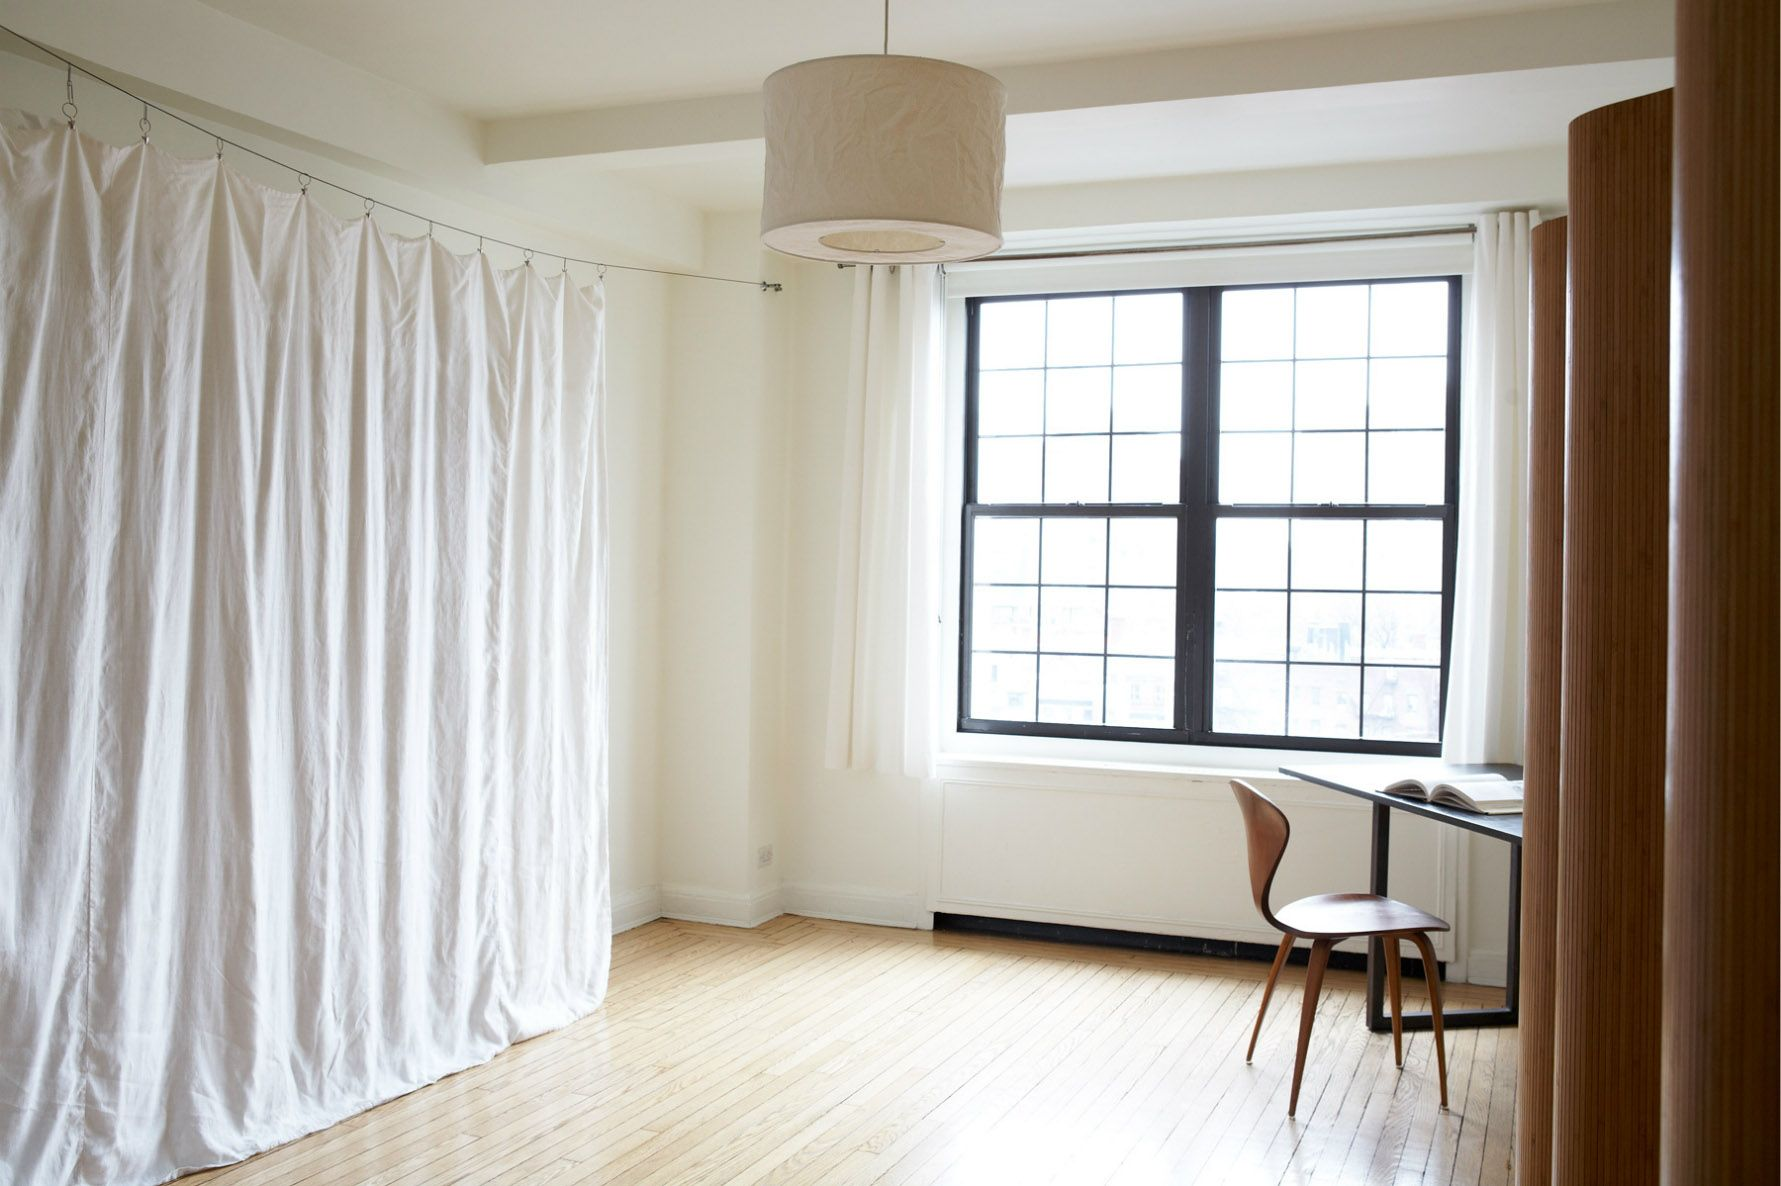 Good Interior Furniture Curtains Decorations Attractive Curtain Room  Dividers Target With White Drums Shade Hanging Lamps In White Rooms Design  Also Simple ...